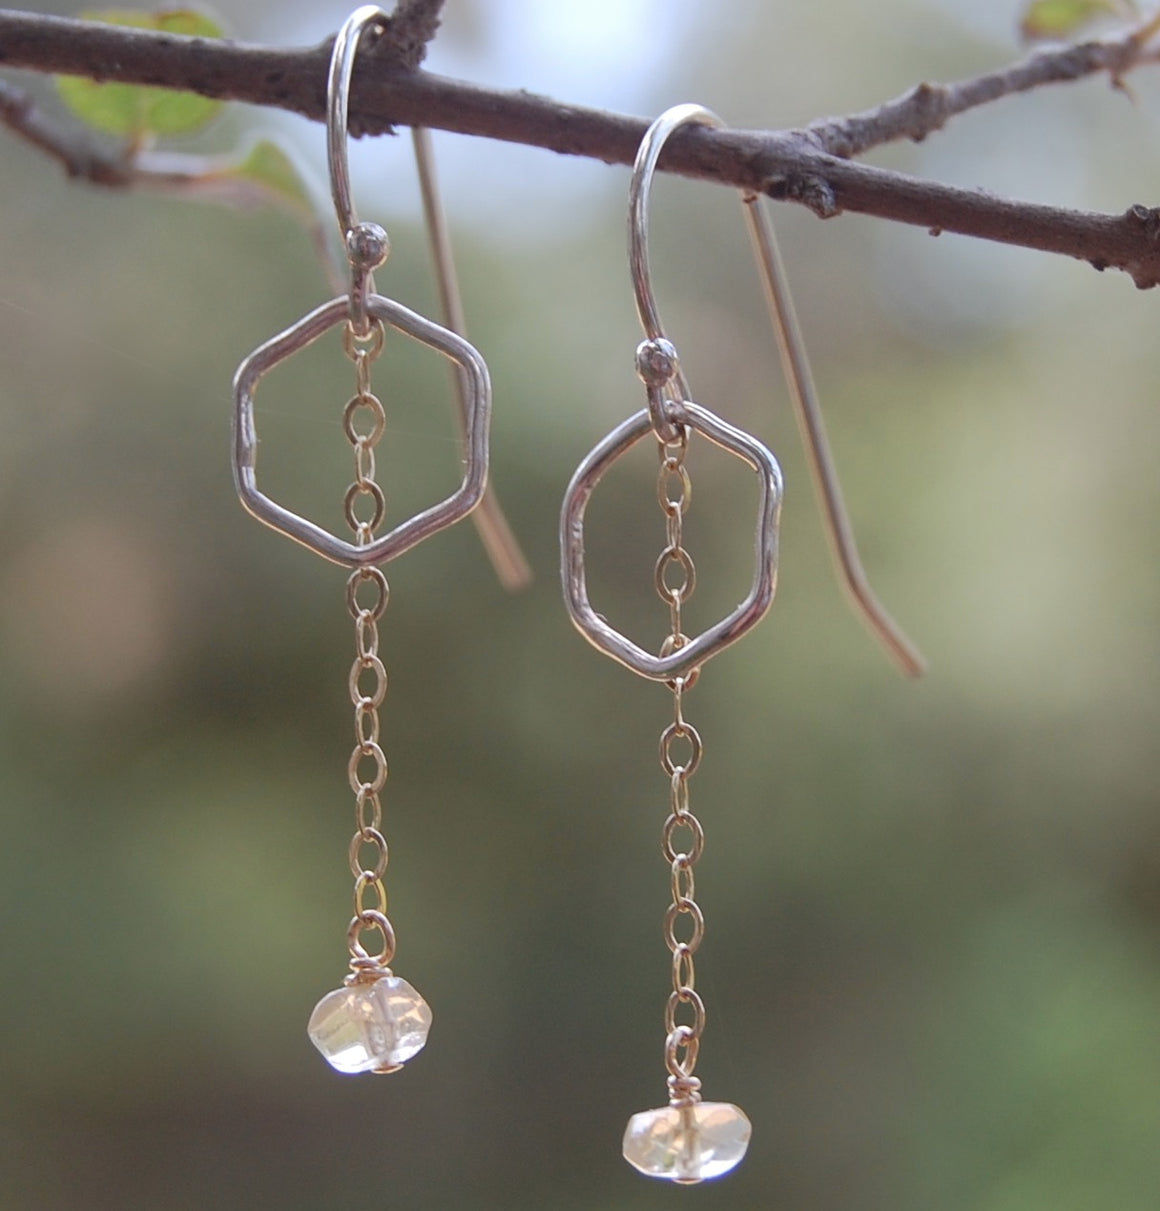 earrings of tiny hexagons with a gold chain hanging down with a bead of citrine at the end like a honey drop